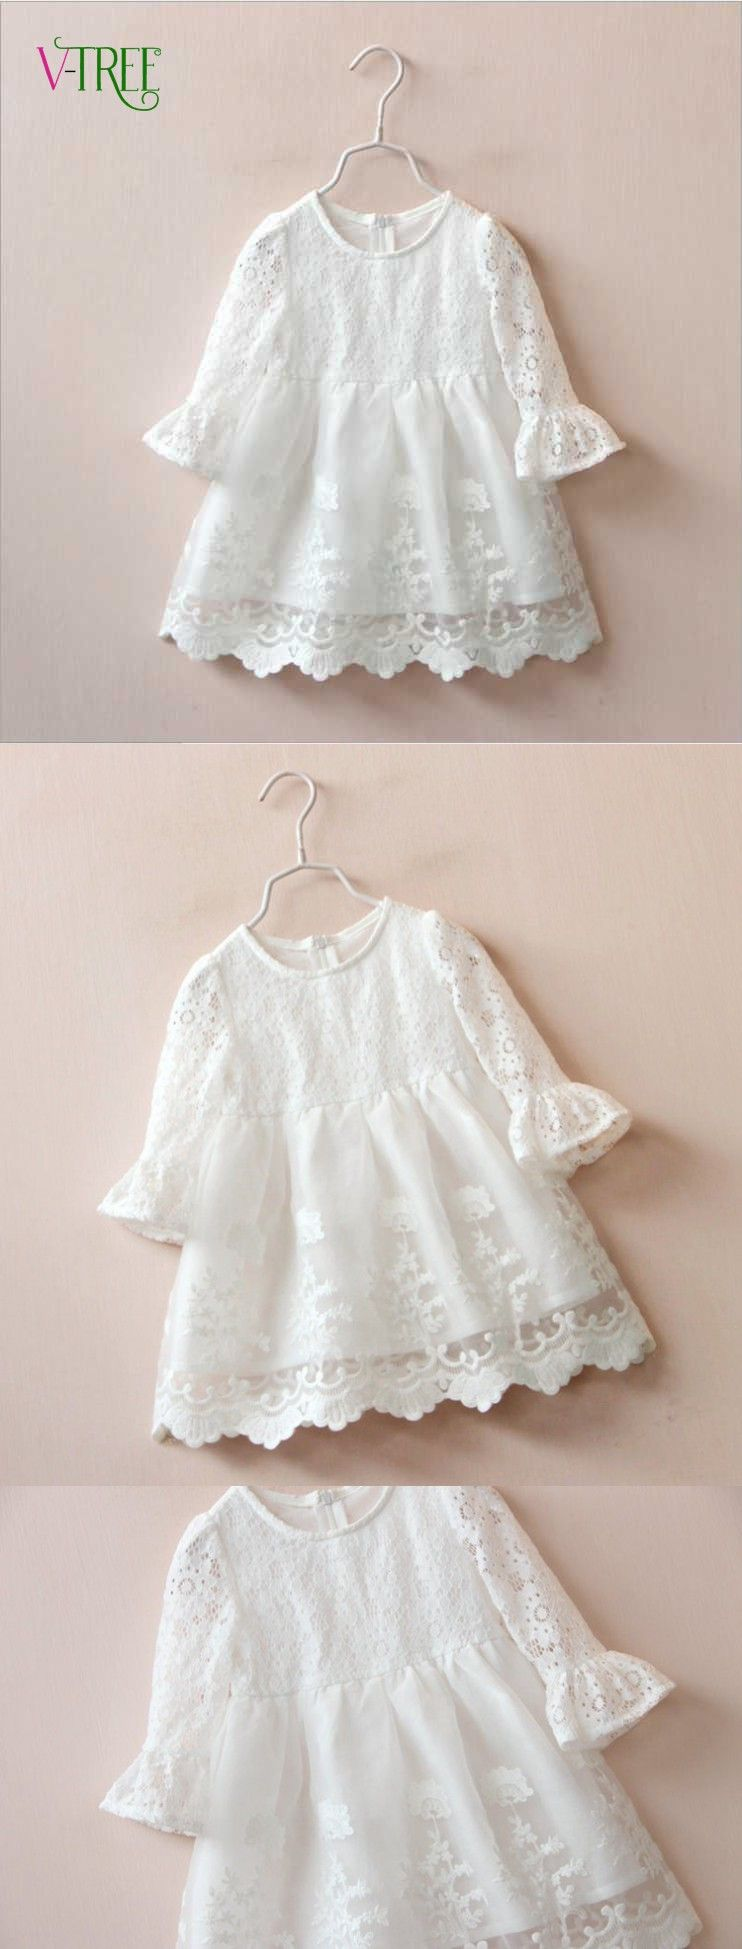 Fashion Baby Girls Princess Dress White Lace Girl Party Wedding Long Sleeve Kids Clothes Tops